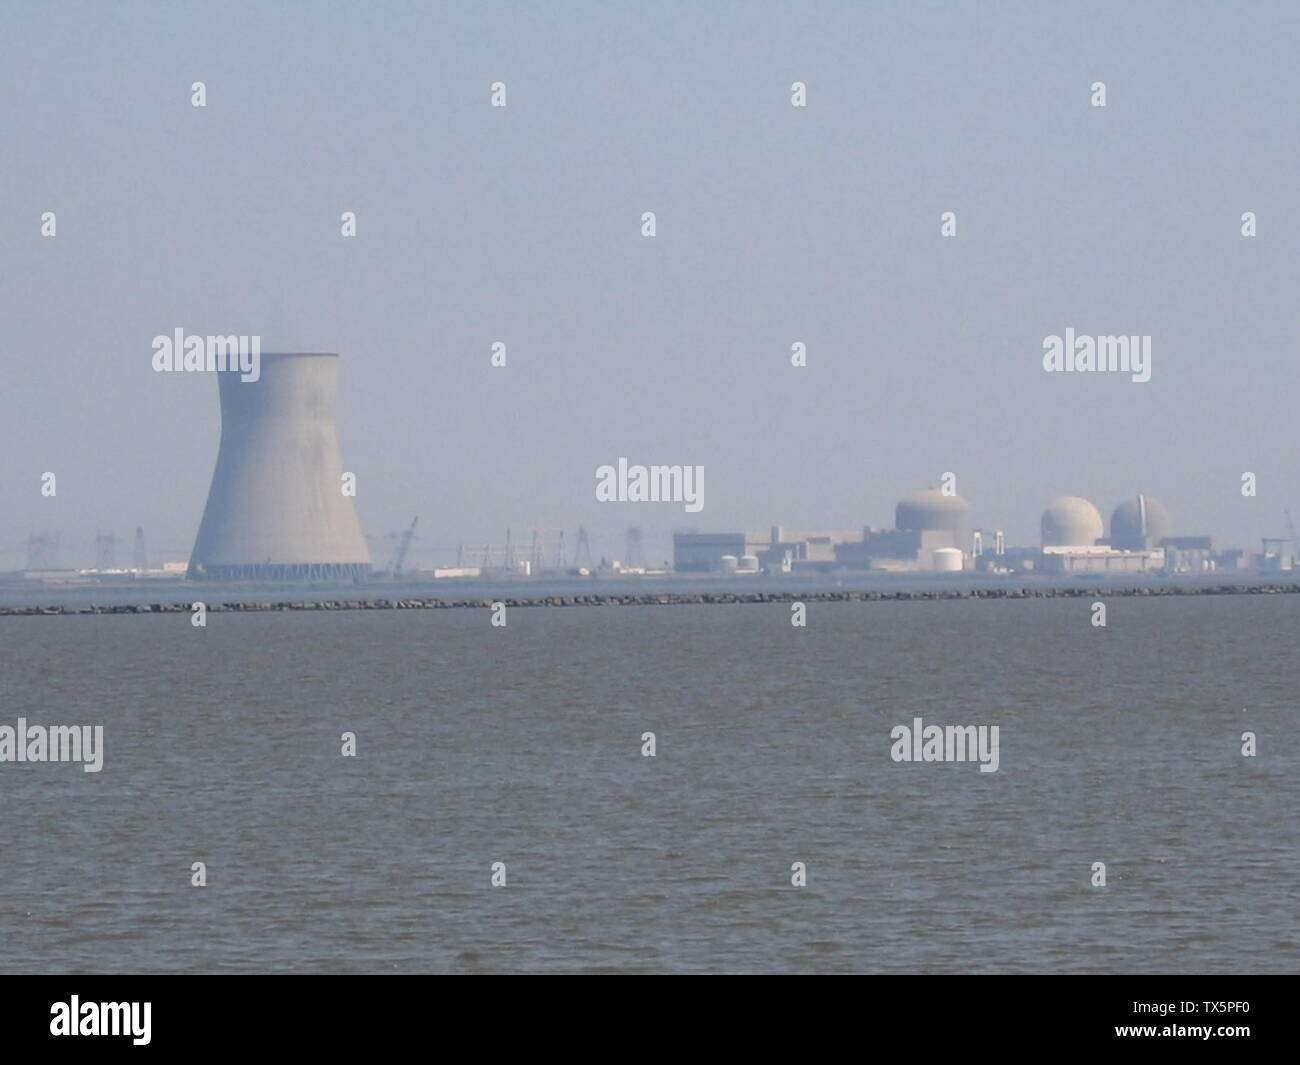 'English: Entire PSE&G nuclear complex (which contains both Hope Creek Nuclear Generating Station and Salem Nuclear Power Plant) as seen across the Delaware Bay from Augustine Beach, Delaware.; 31 May 2007(according to Exif data); Transferred from en.wikipedia to Commons by Saibo using CommonsHelper.; EaglesFanInTampa at English Wikipedia; ' - Stock Image